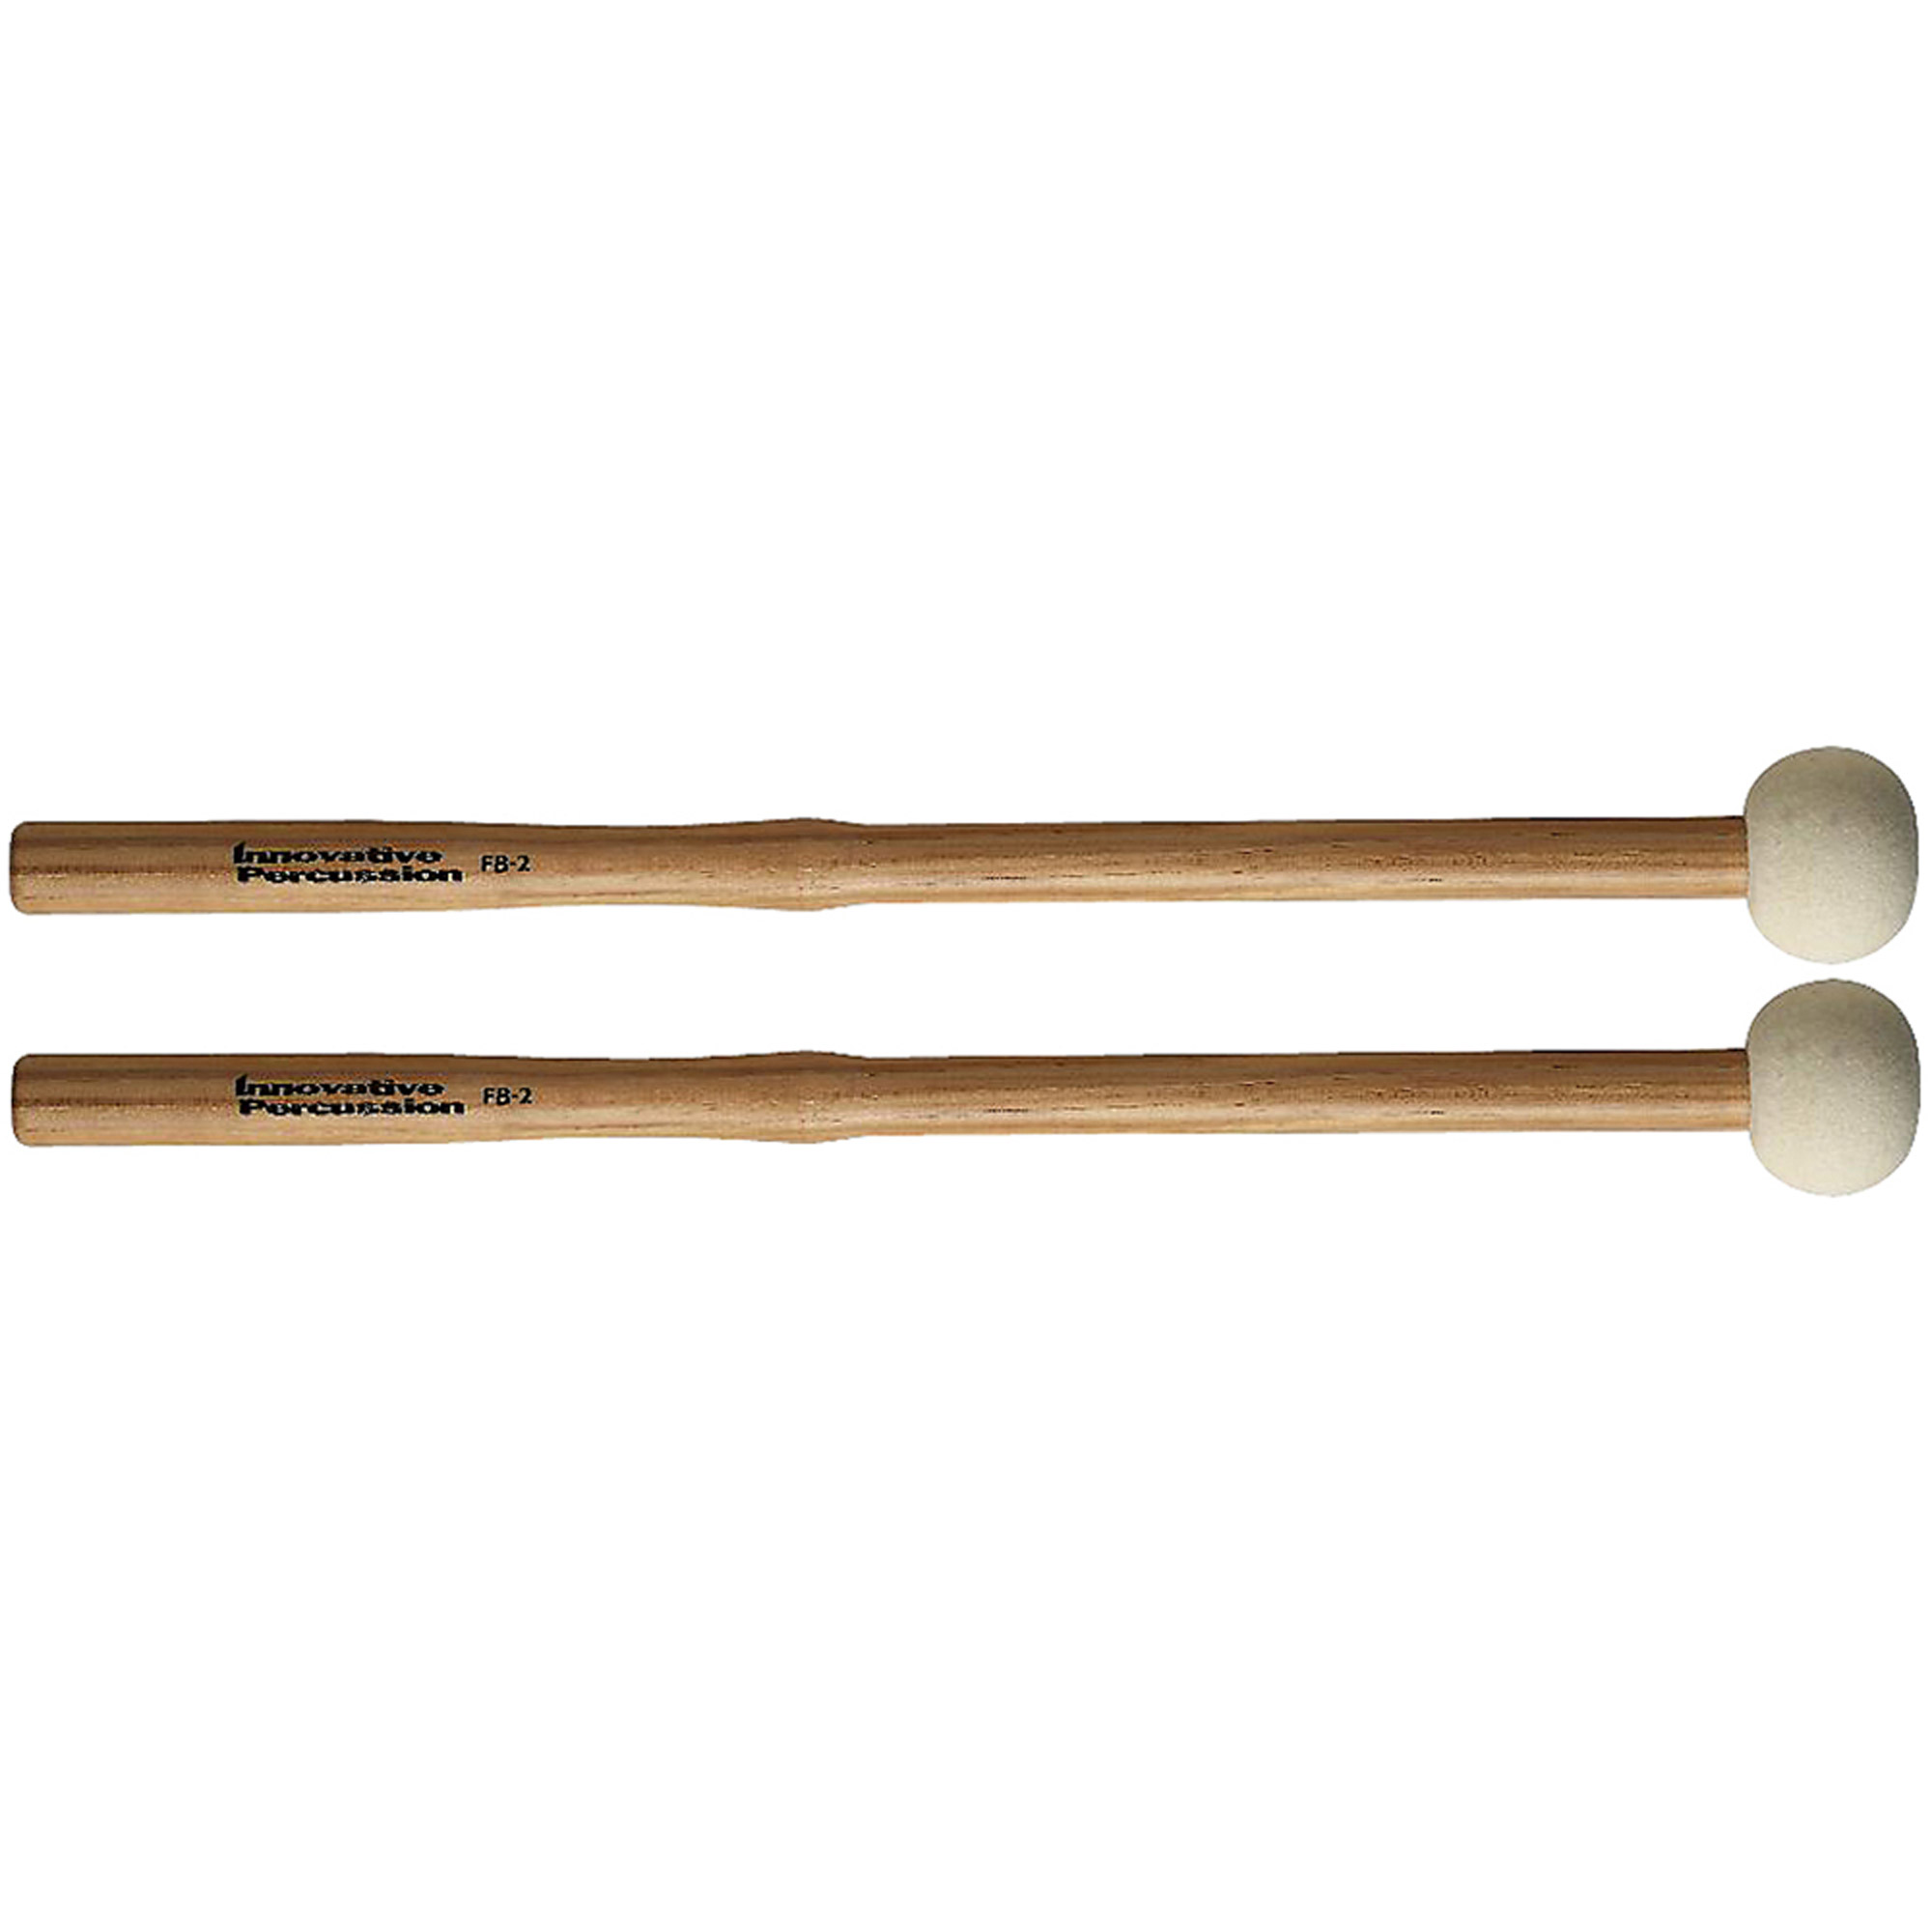 Innovative Percussion FB2 Hard Marching Bass Drum Mallets w  Heartwood Hickory Shafts by Innovative Percussion